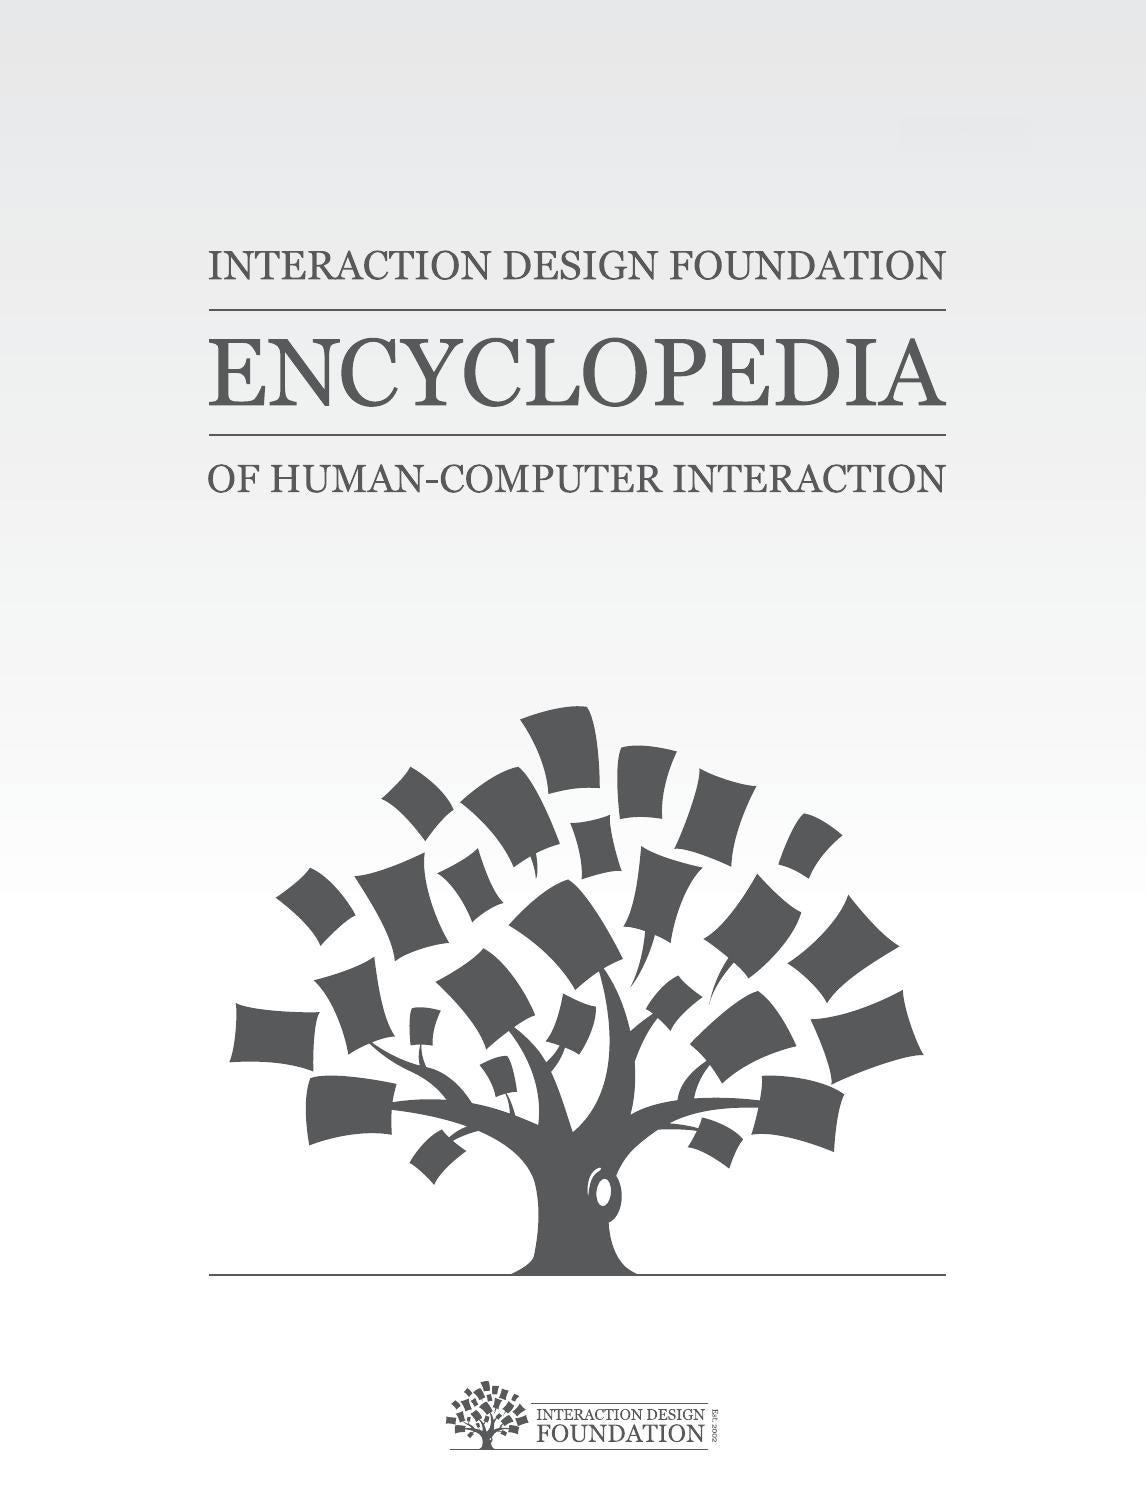 Ch1 The Encyclopedia Of Human Computer Interaction By Louisville Center For Design At Lindsey